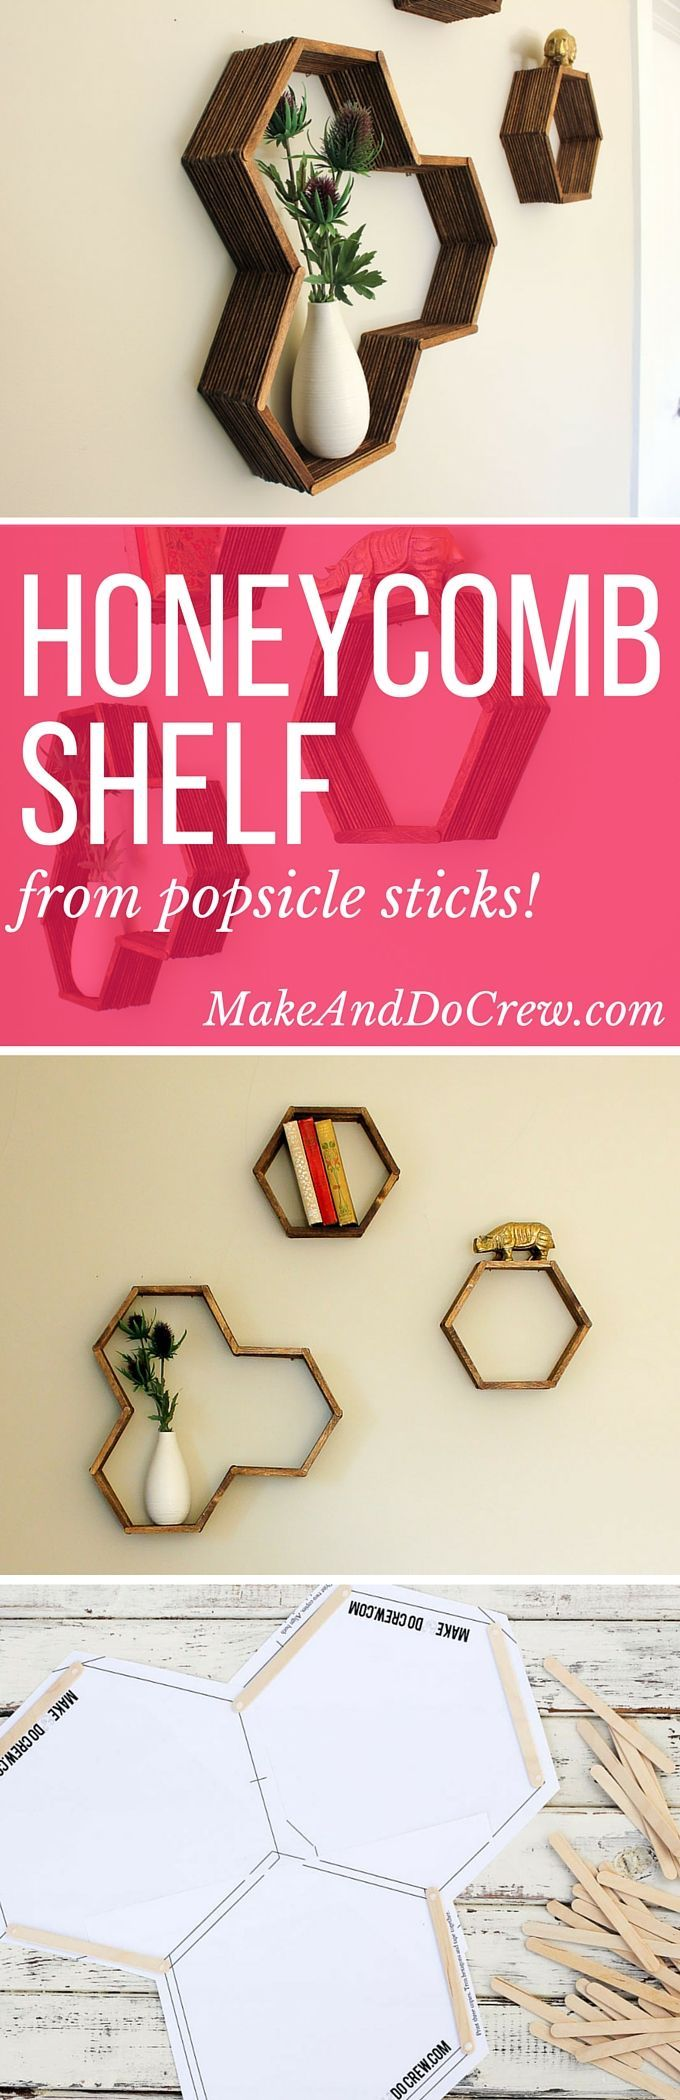 Honeycomb Shelves (Made With Popsicle Sticks!) Make awesome mid century modern honeycomb shelves for less than $10 using popsicle sticks! These West Elm worthy hexagon shelves add warmth and dimension to any gallery wall and also look great on their own. Click for instructions and free downloadable template. | Make awesome mid cent...